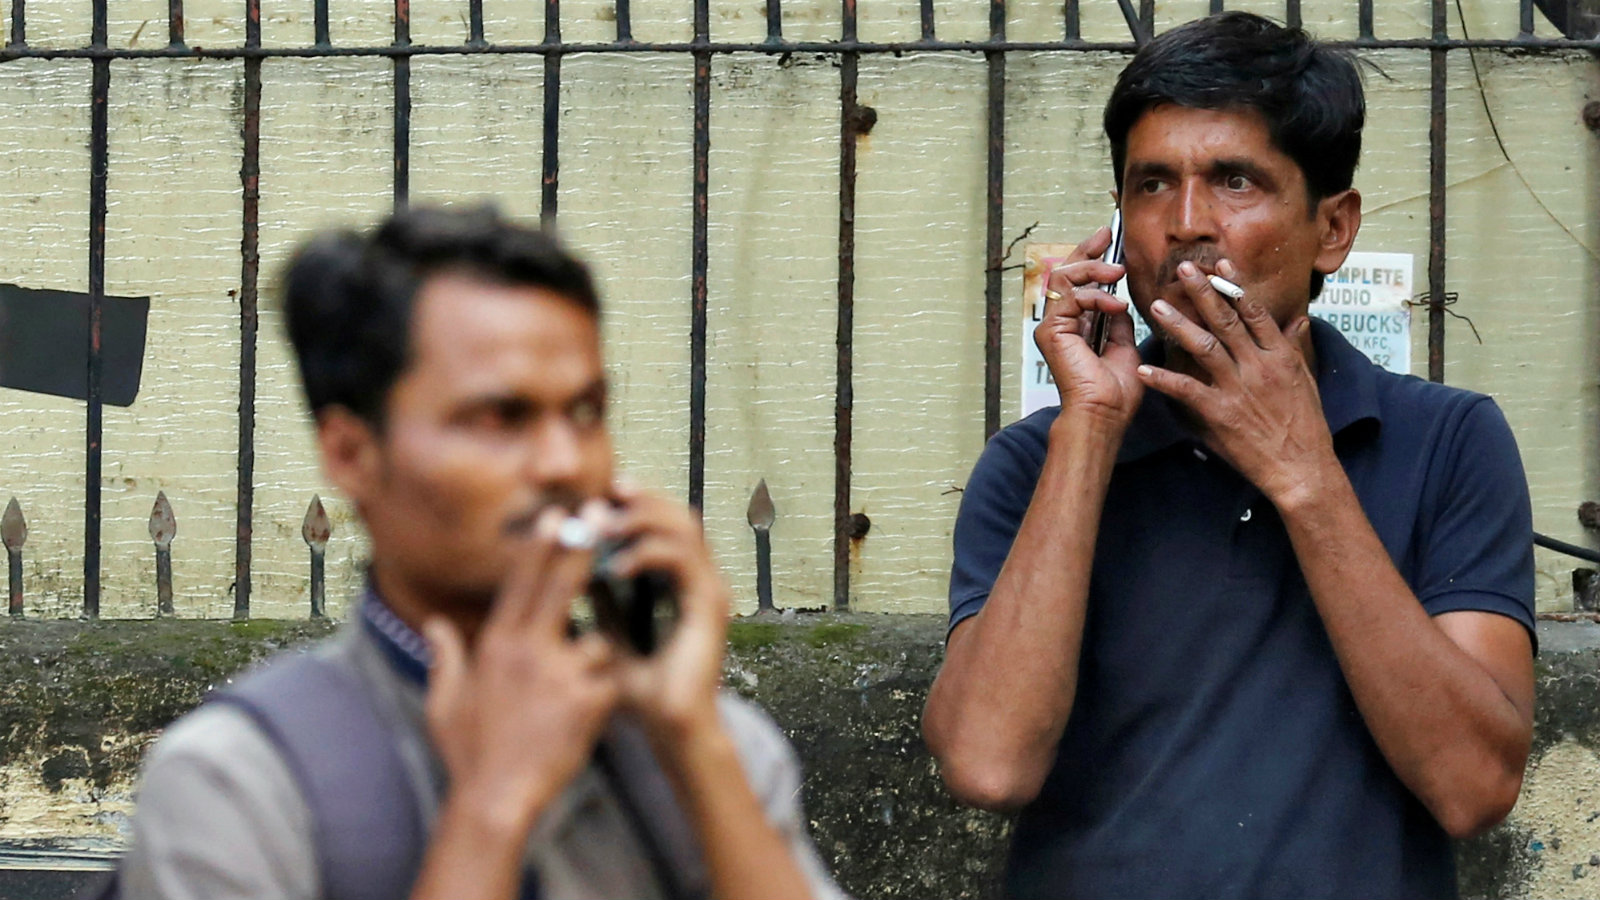 People smoke cigarettes along a road in Mumbai, India, October 26, 2016. Picture taken October 26, 2016.